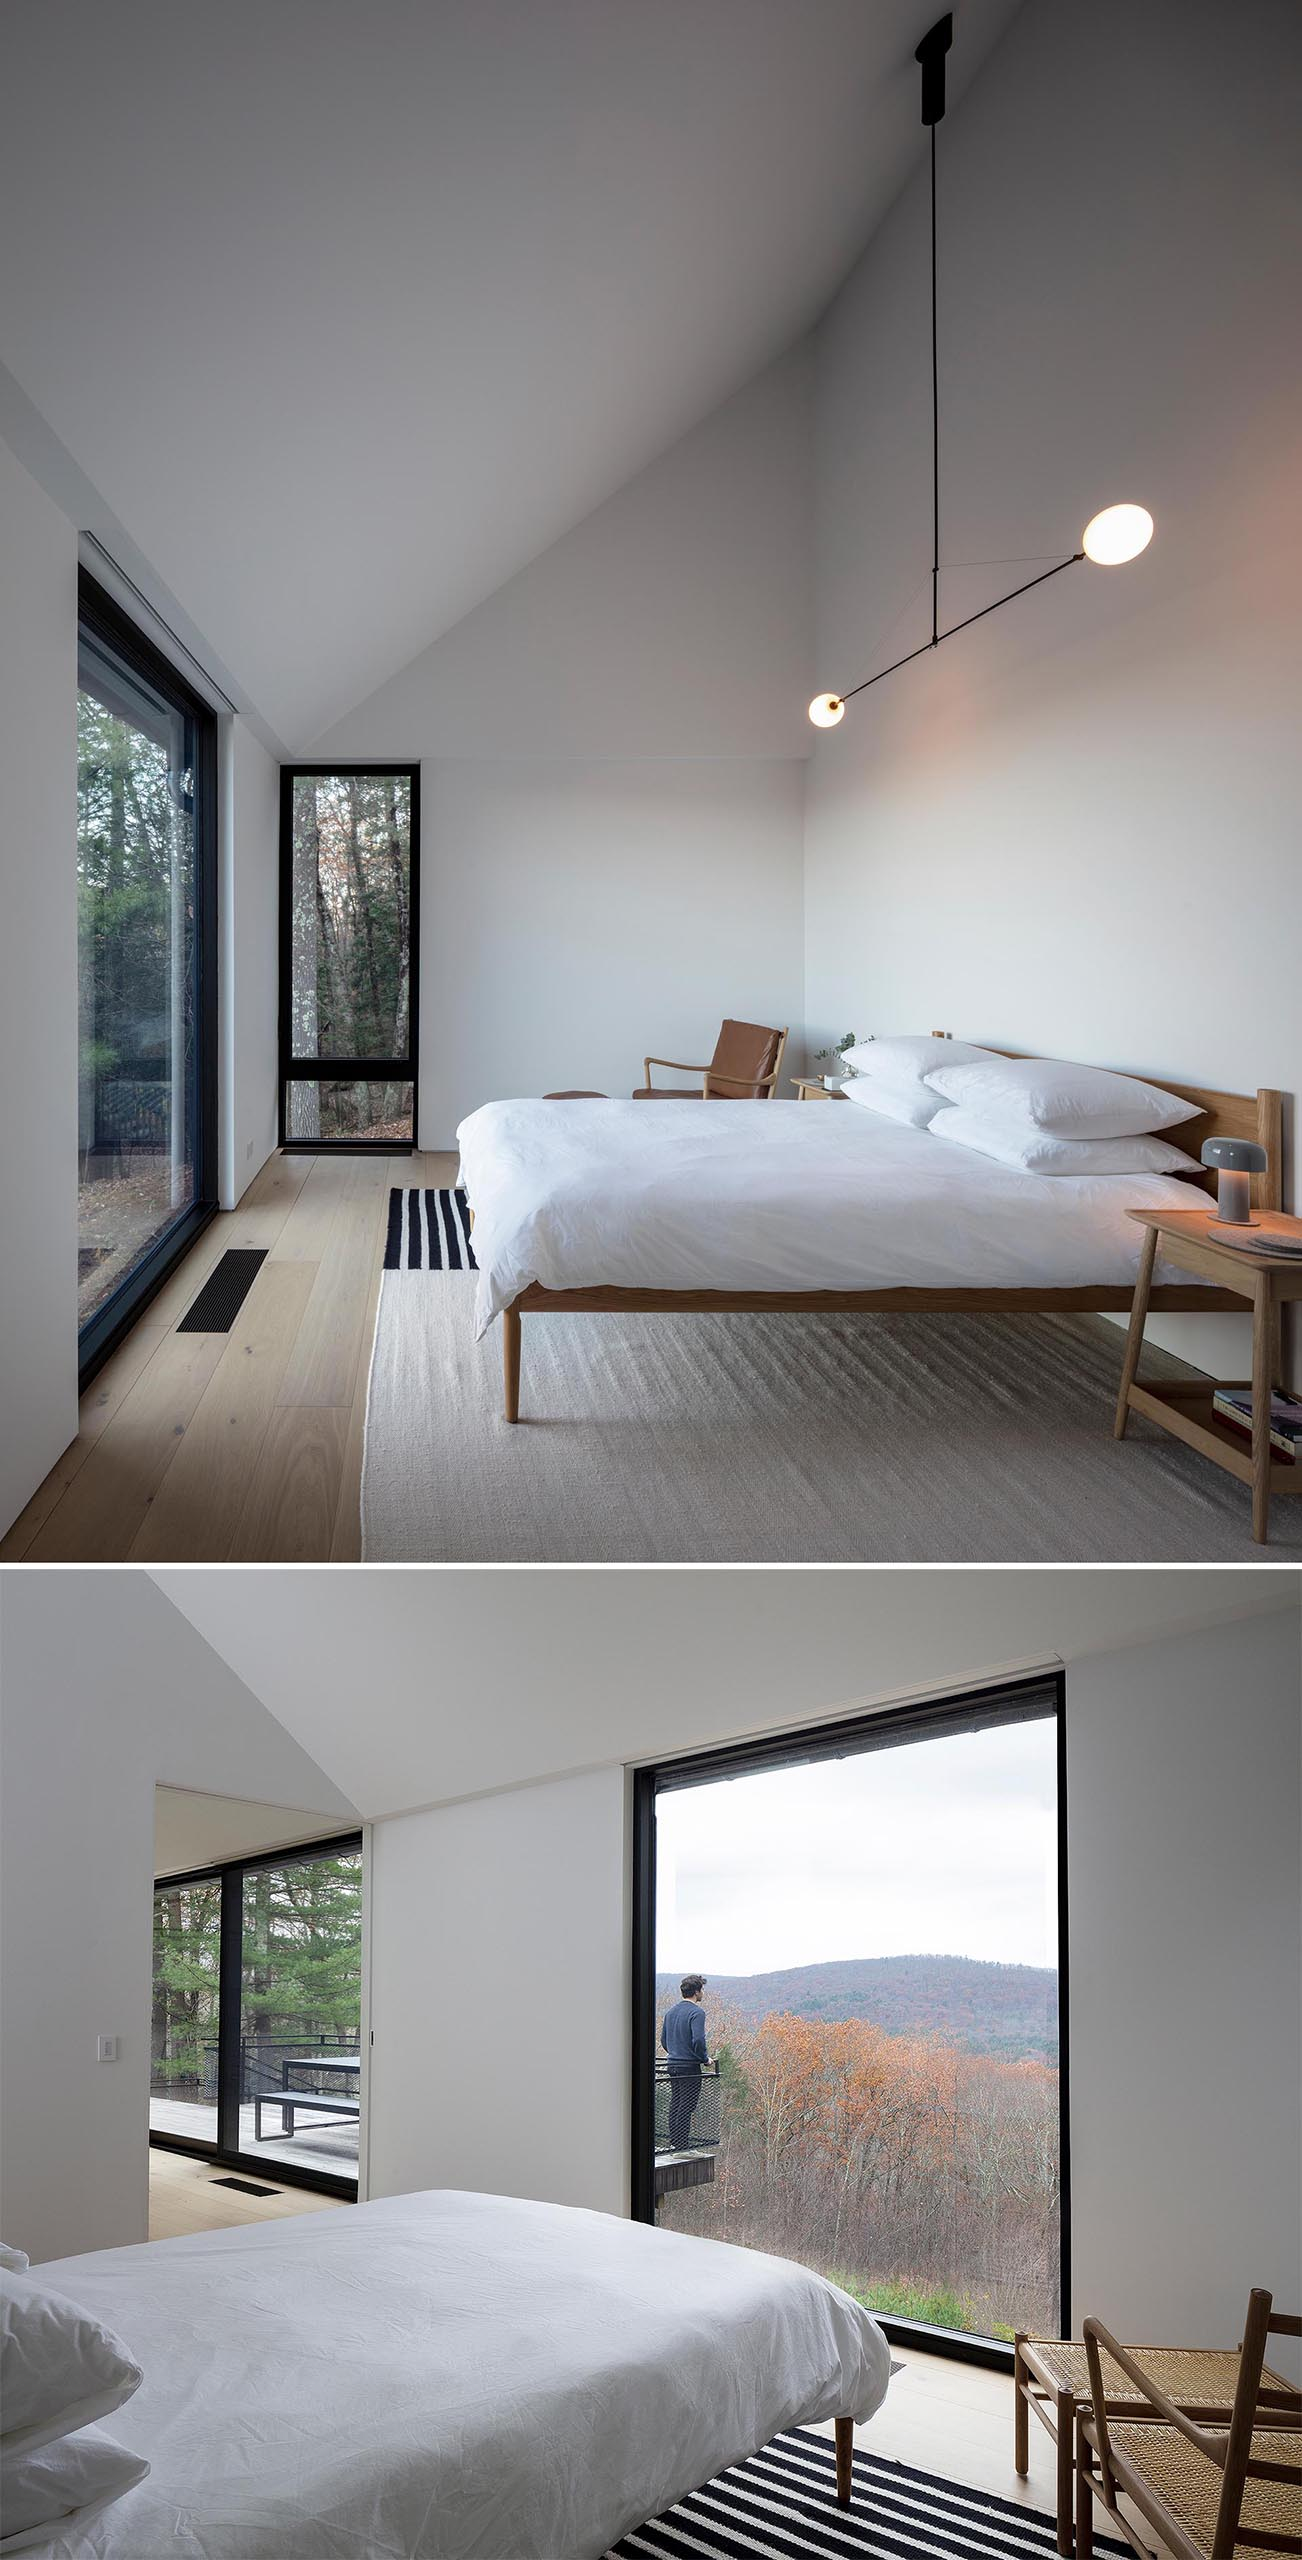 A minimalist master bedroom with a sloped ceiling, white walls, a large rug, and modern wood furniture.